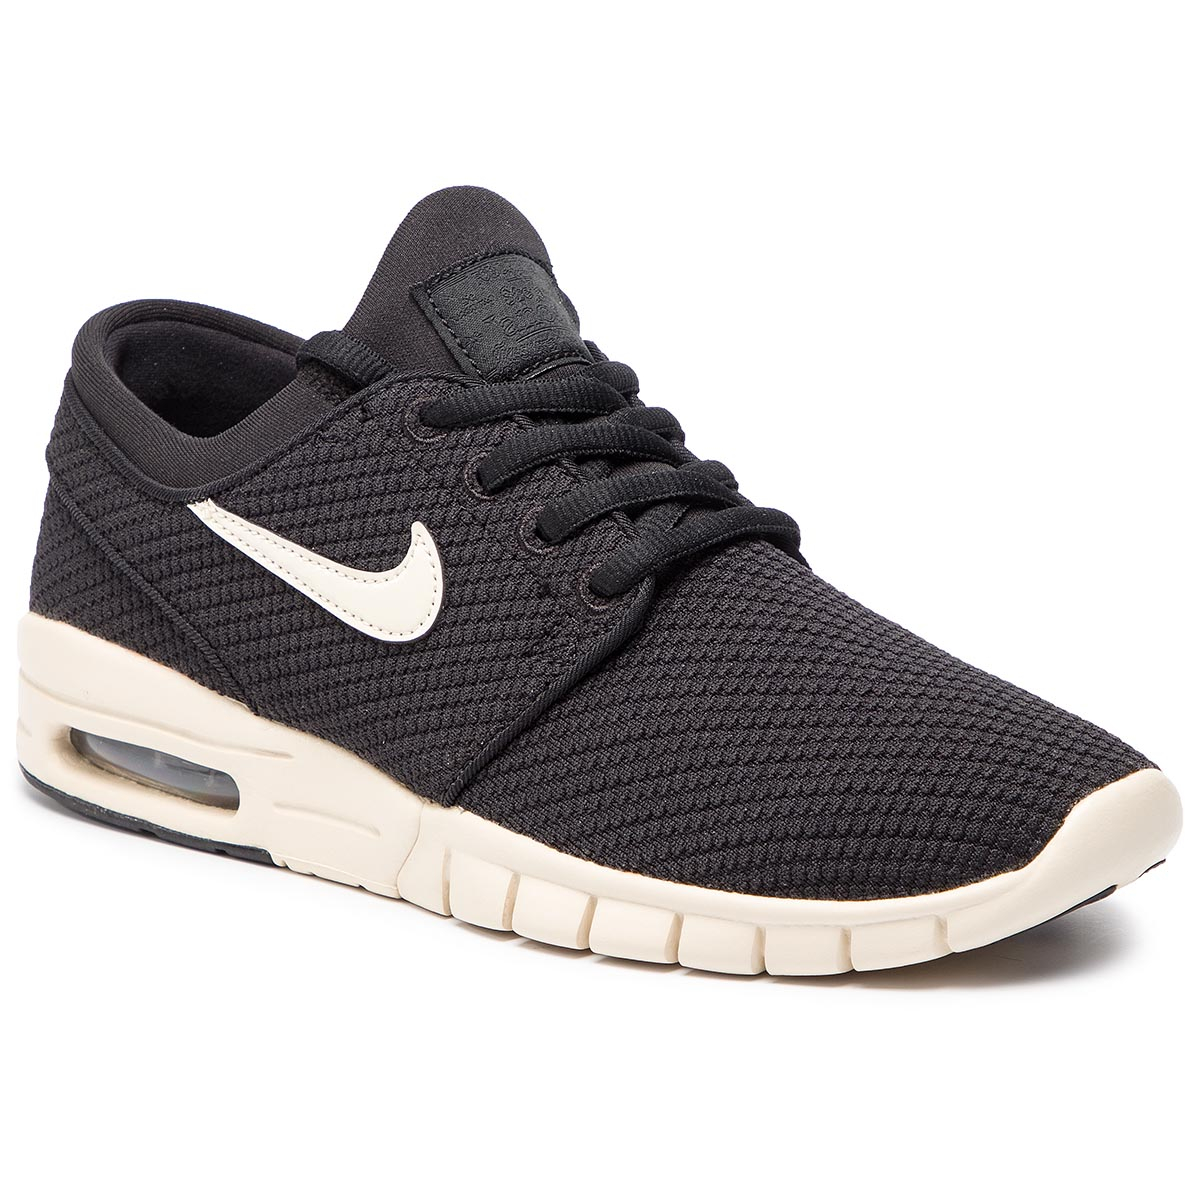 Topánky NIKE - Stefan Janoski Max 631303 032 Black/Light Cream/Light Cream